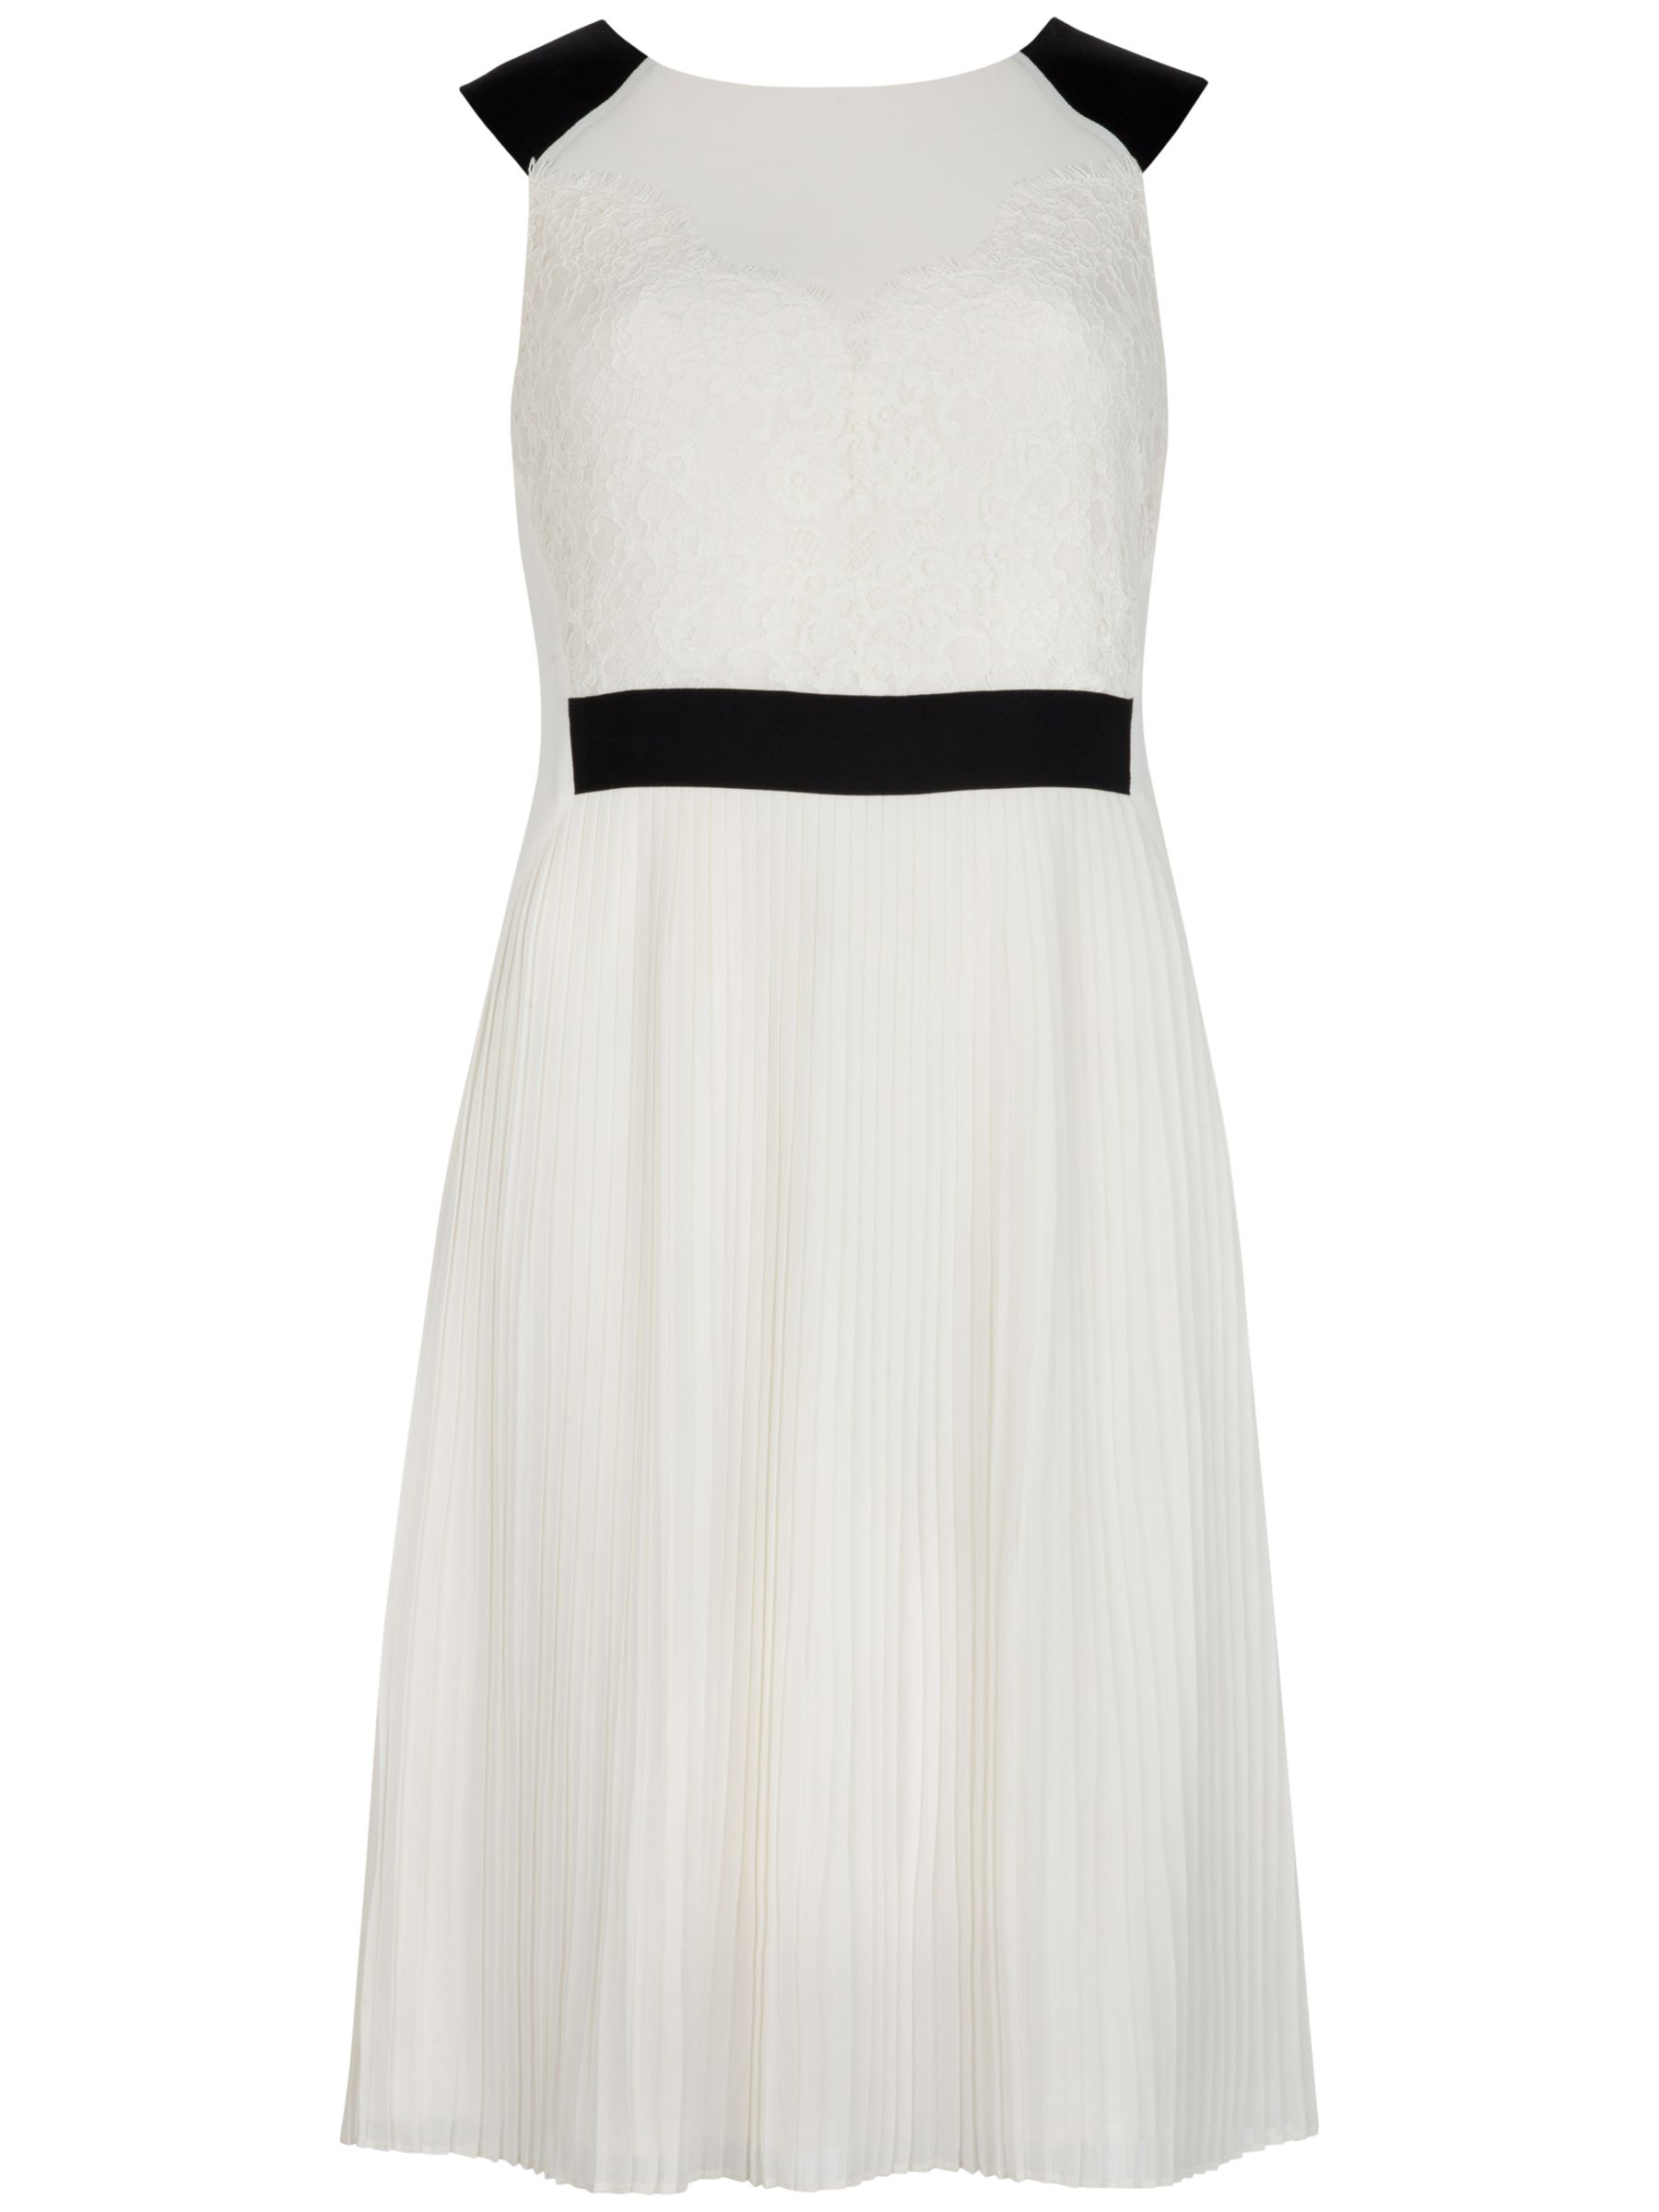 ted baker lace bodice pleat dress cream, ted, baker, lace, bodice, pleat, dress, cream, ted baker, 5|1|3|4|0|2, women, womens dresses, fashion magazine, womenswear, men, brands l-z, 1845725